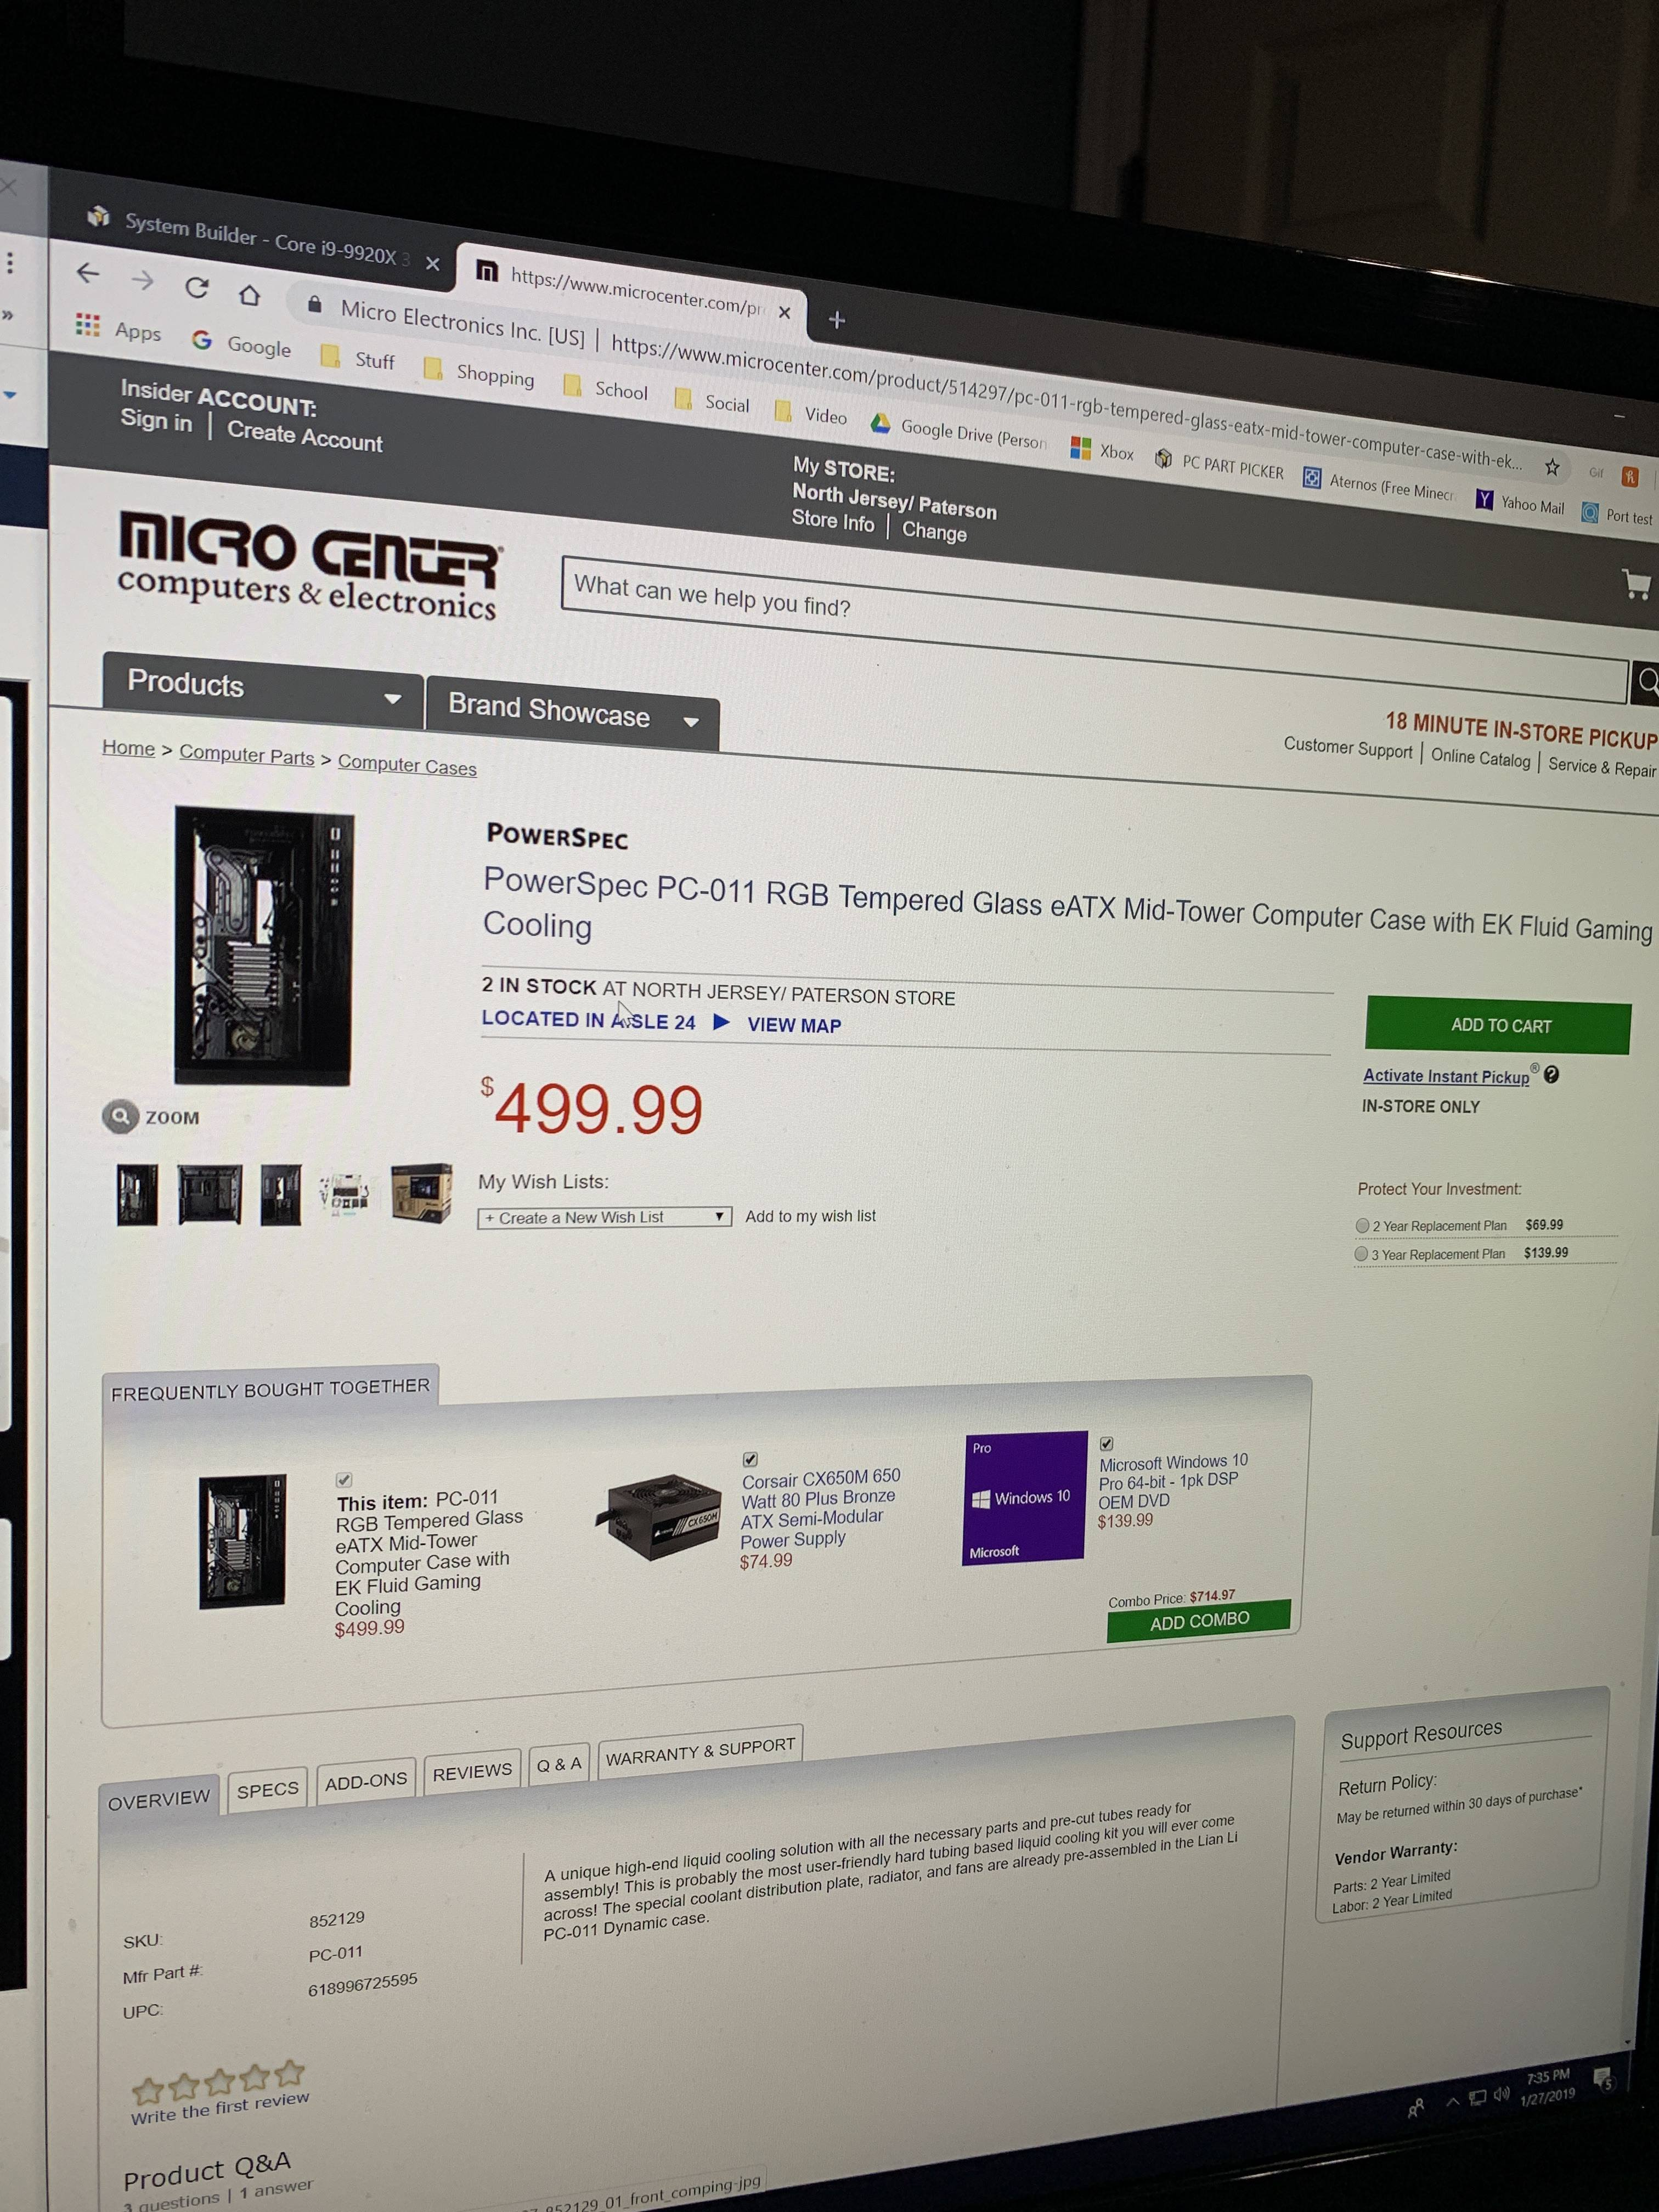 Computer Online Store The Ek Pc O11 Is Listed On The Online Store For Micro Center